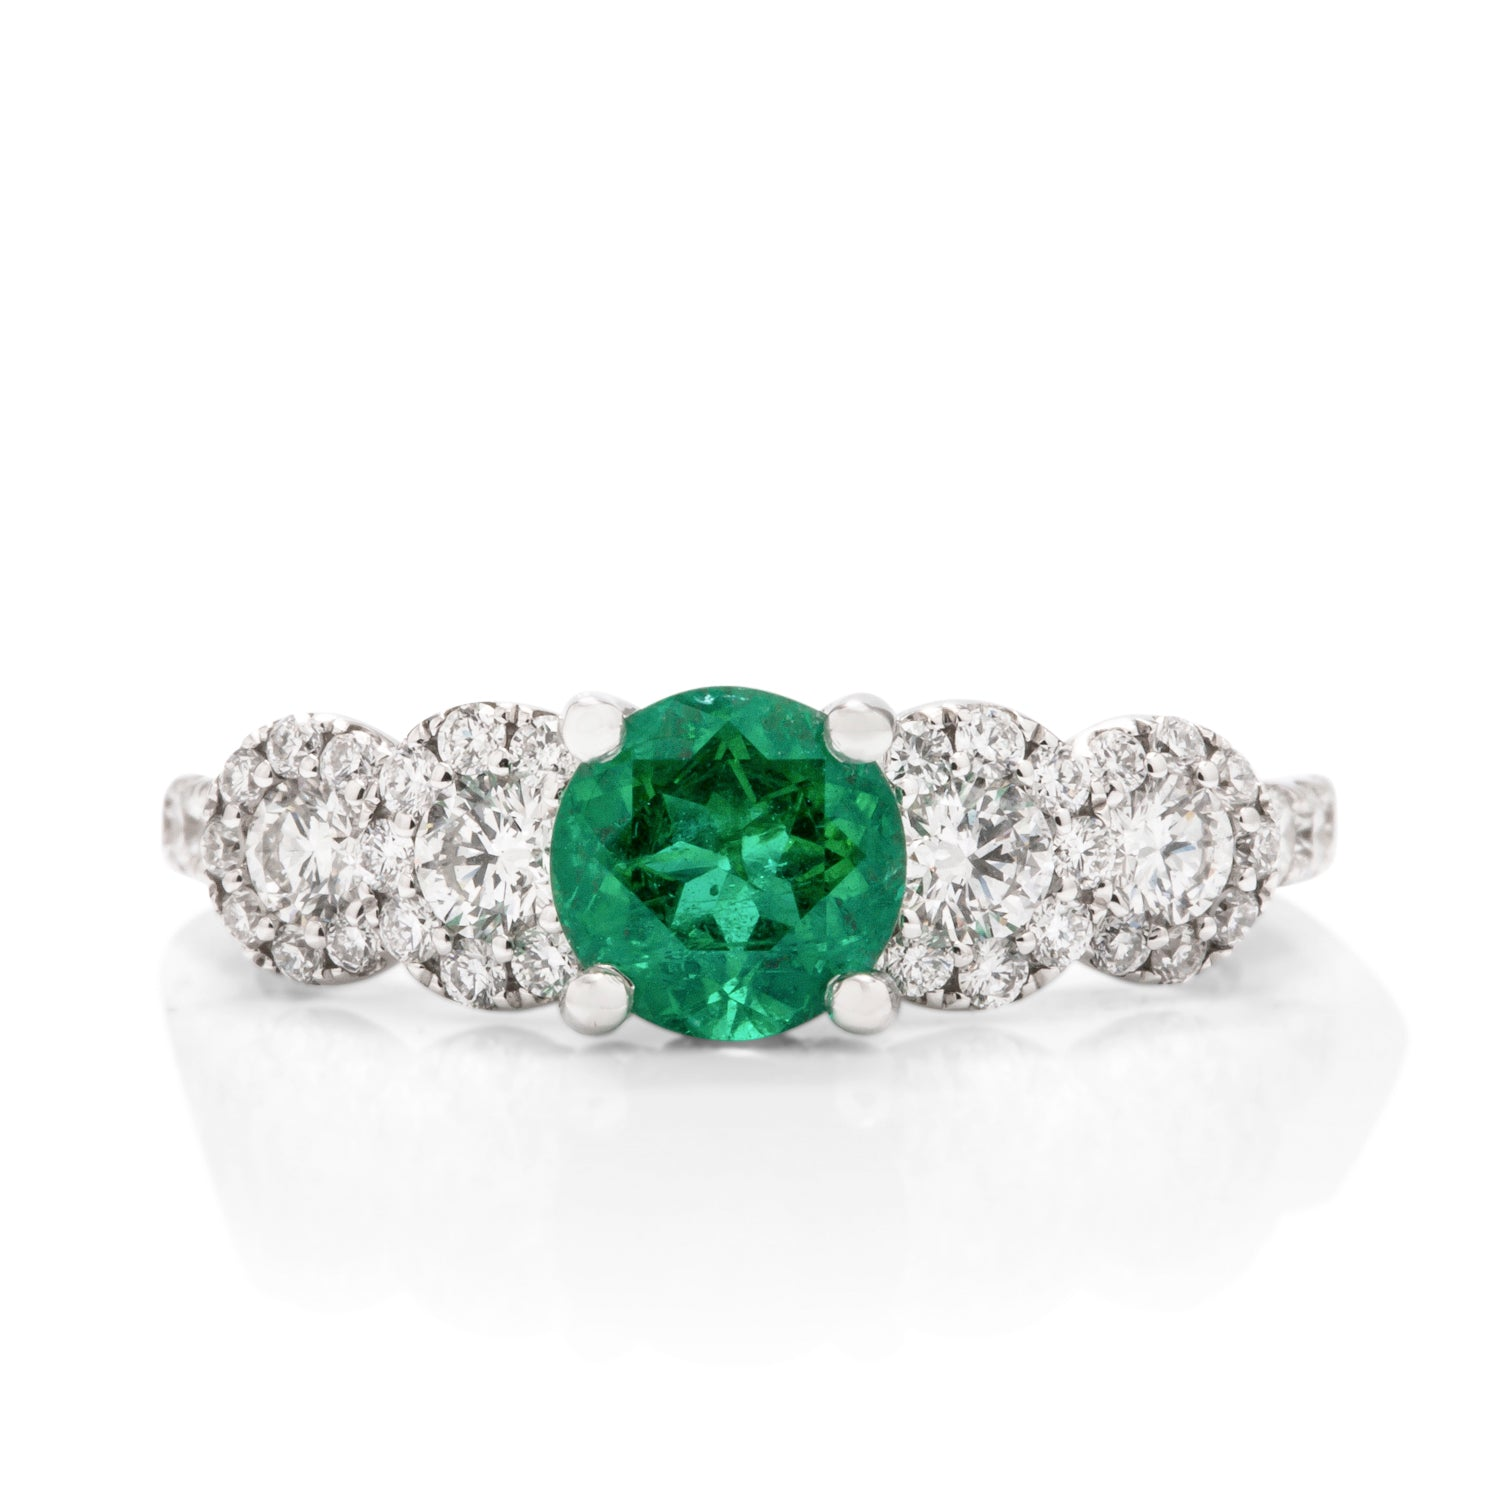 Emerald and Diamond Ring - Charles Koll Jewellers